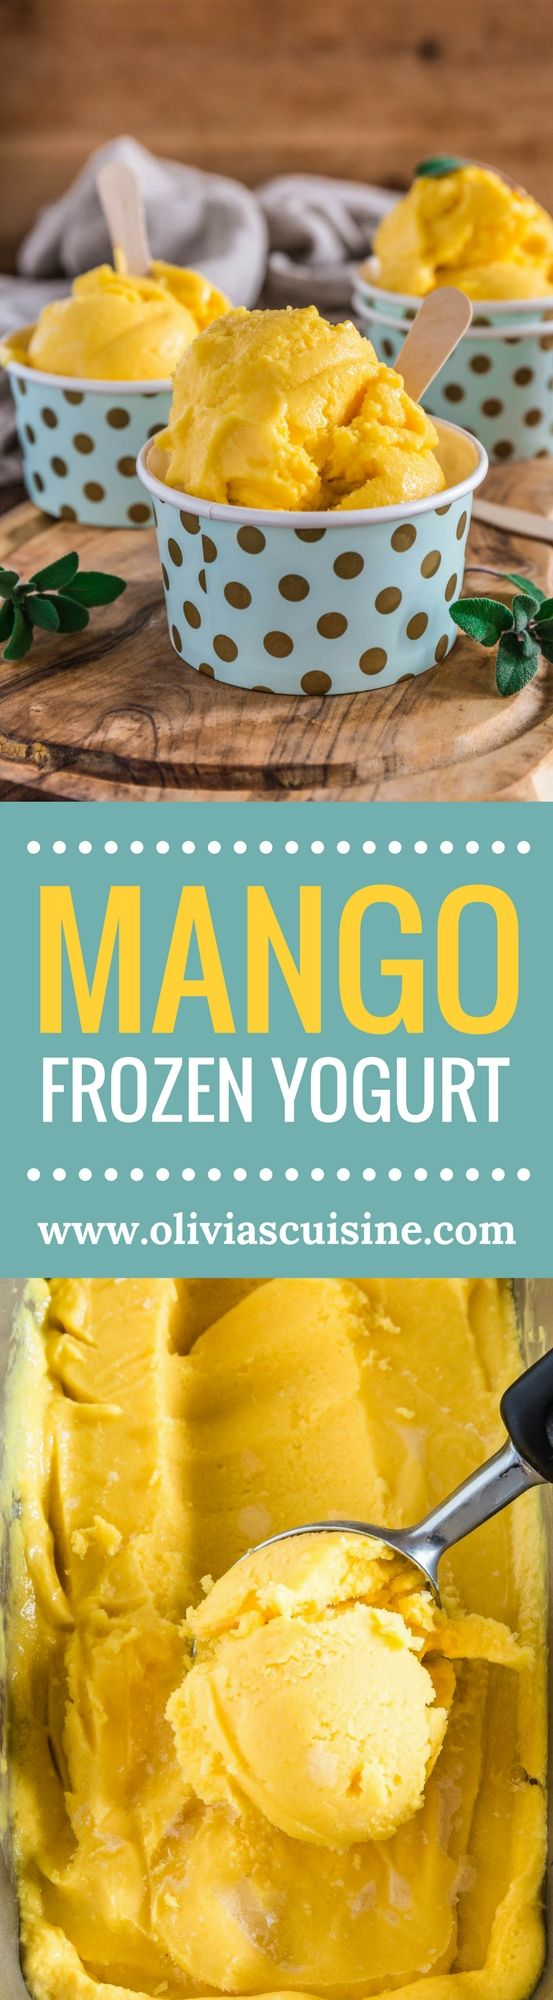 Mango Frozen Yogurt | www.oliviascuisine.com | Luscious, creamy and tangy, this Mango Frozen Yogurt is everything you need on a hot summer day! And the best part? No ice cream machine necessary! (Recipe by @oliviascuisine.) #sponsored #MomBlogTourFF